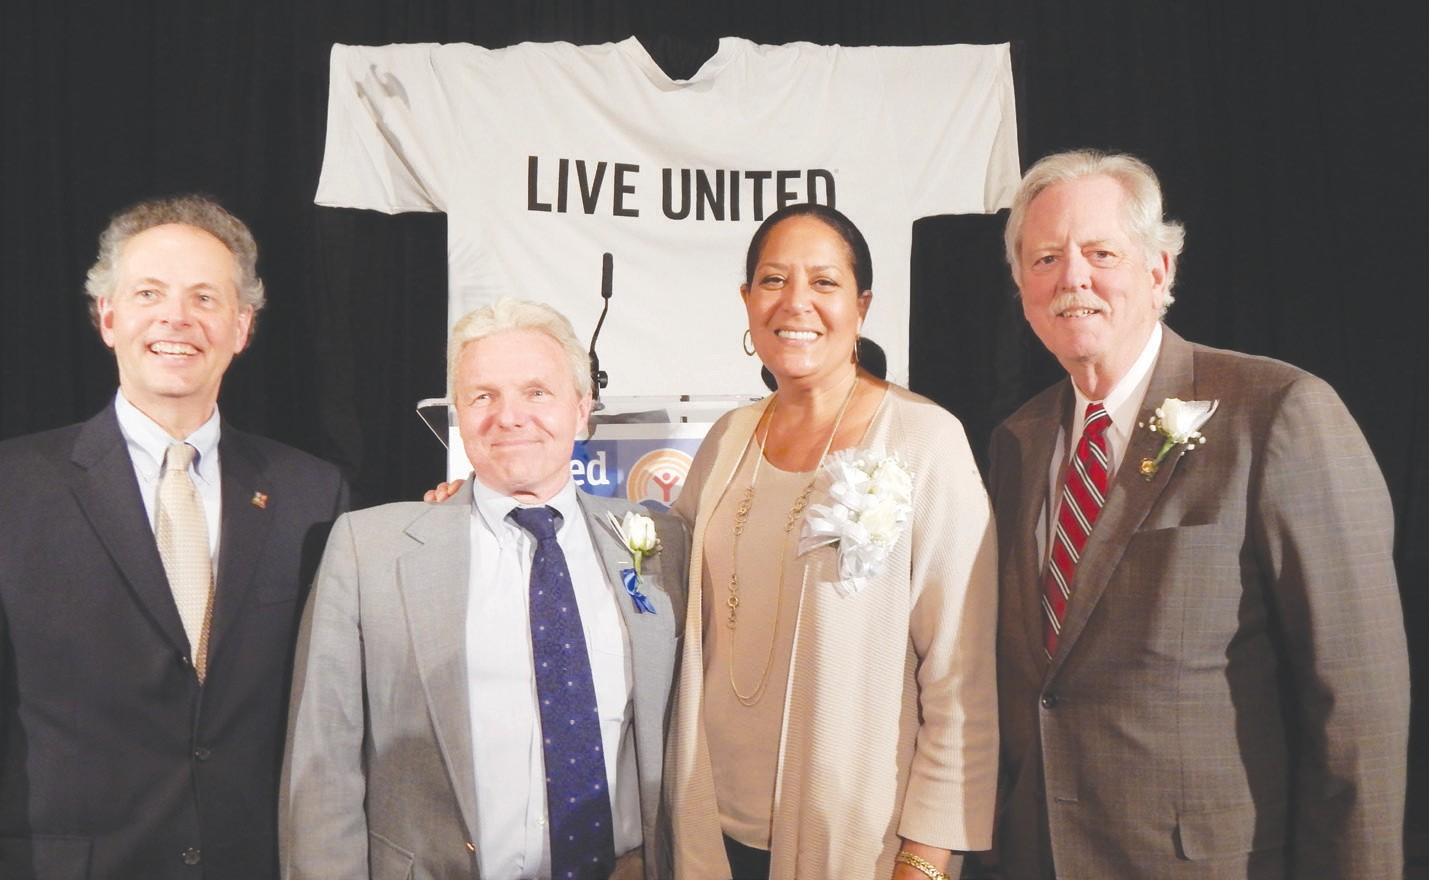 United Way Greg Schroder, Craig Harney, Linda Evans and Bob Jepson